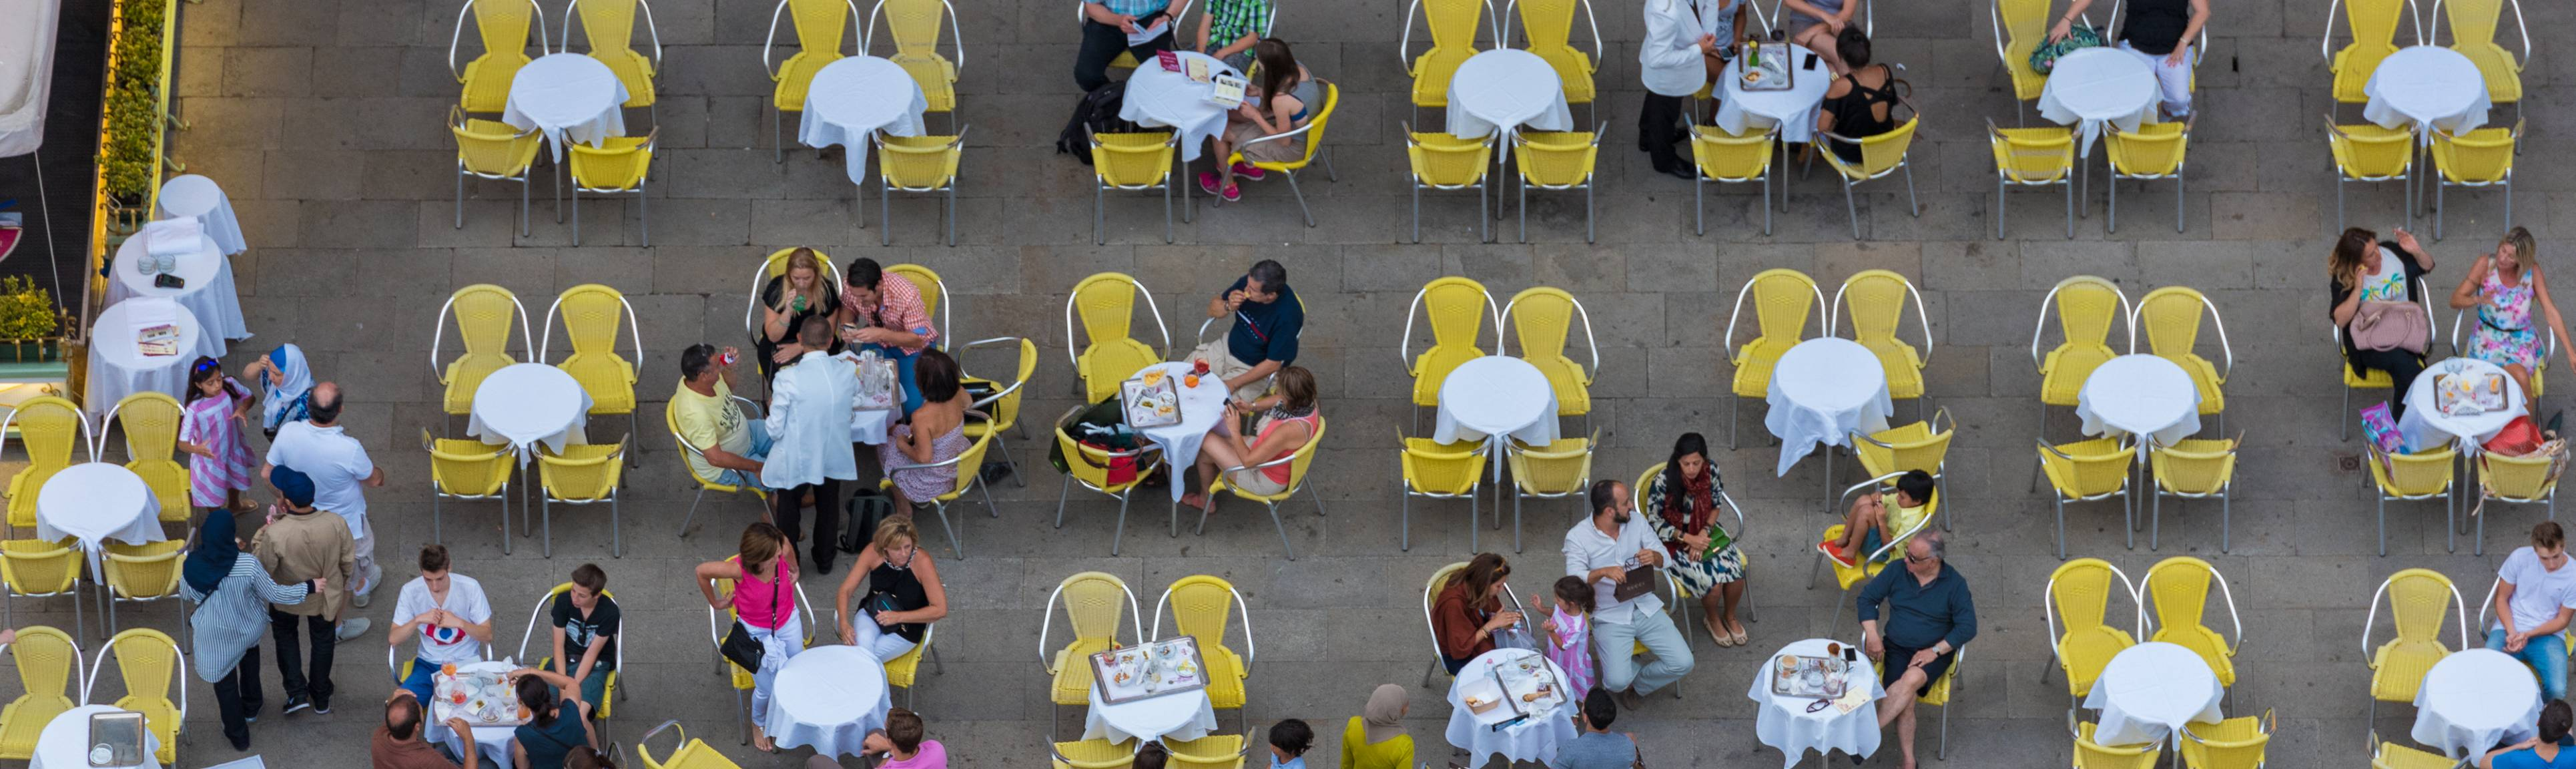 Bird's eye view of rows of seated diners in Rome